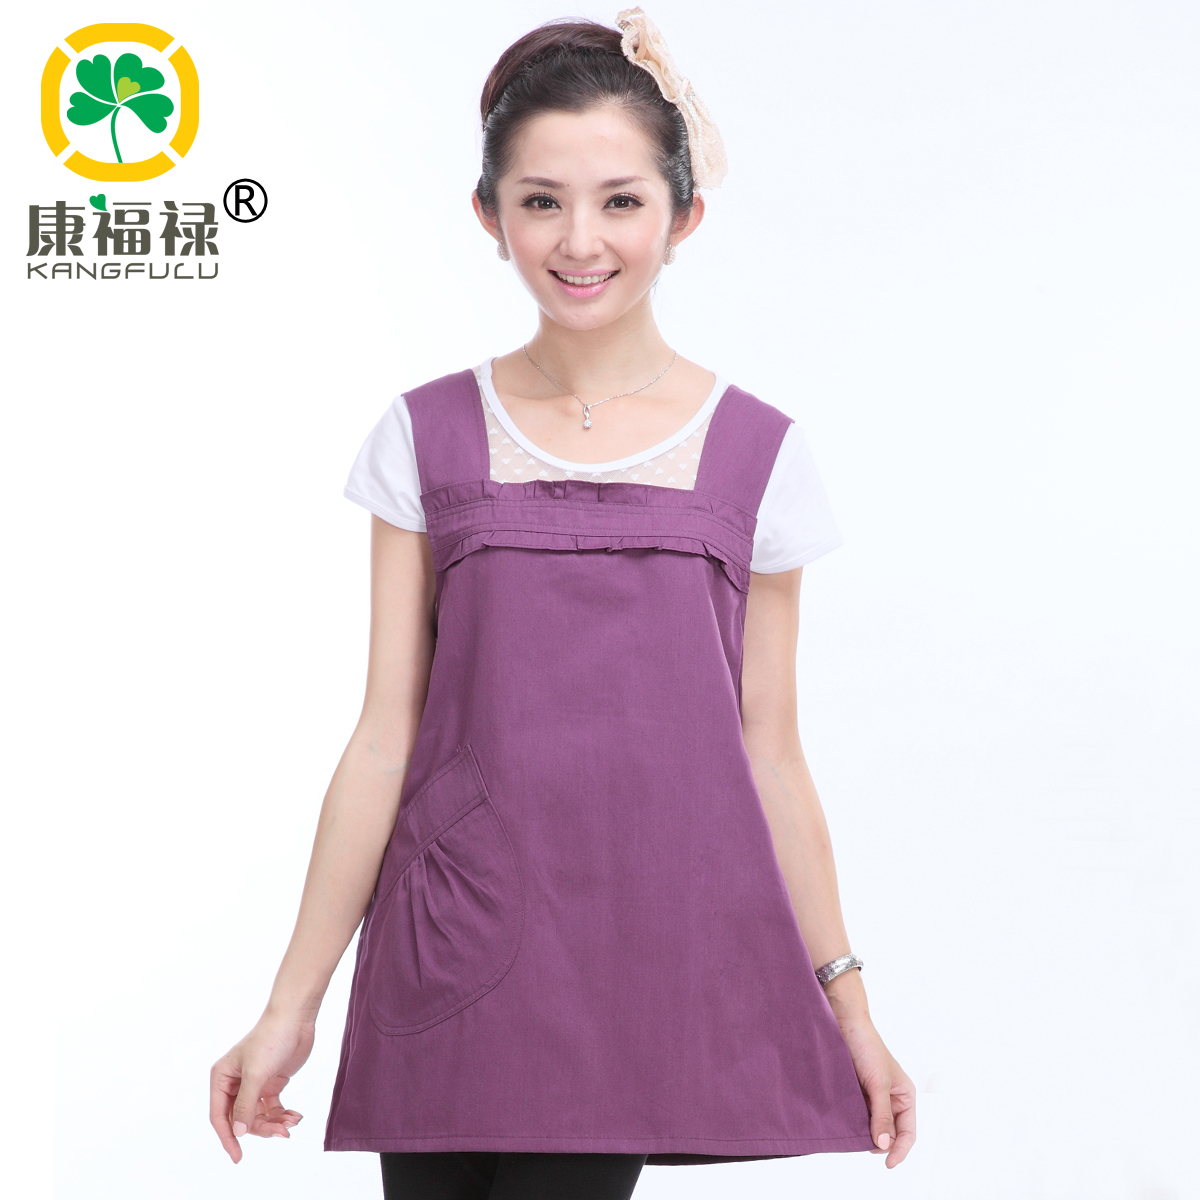 Radiation-resistant maternity clothing maternity radiation-resistant tank dress